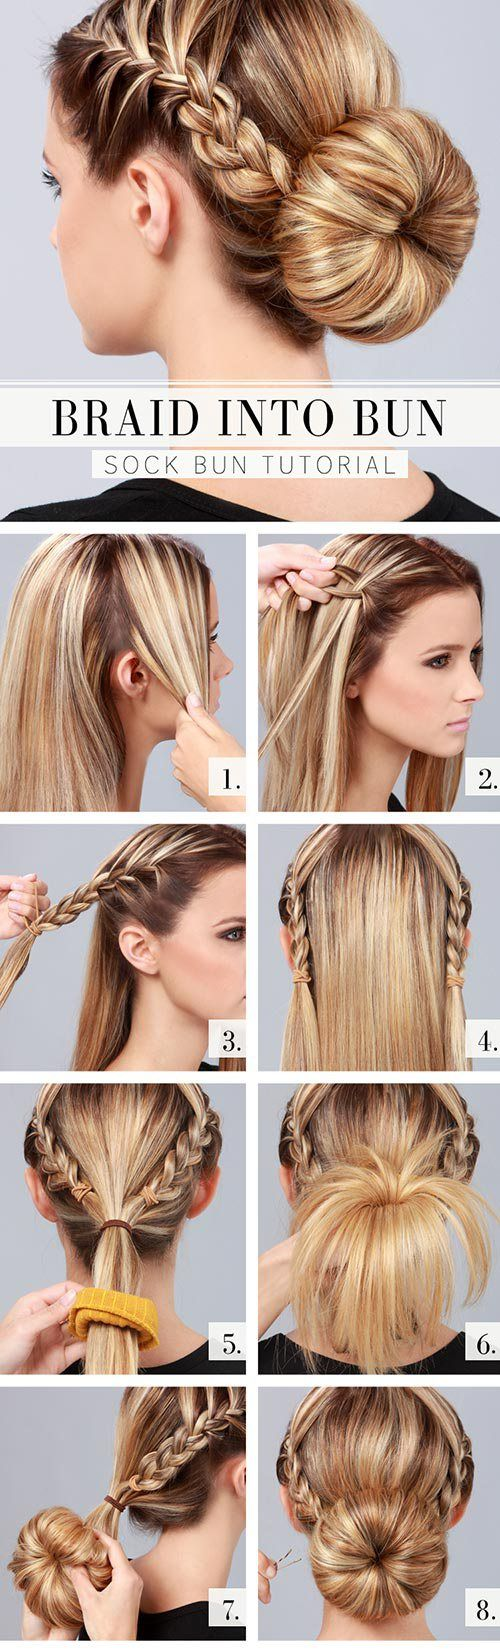 minutes hair tutorials are fast hair styling pictutorials that can